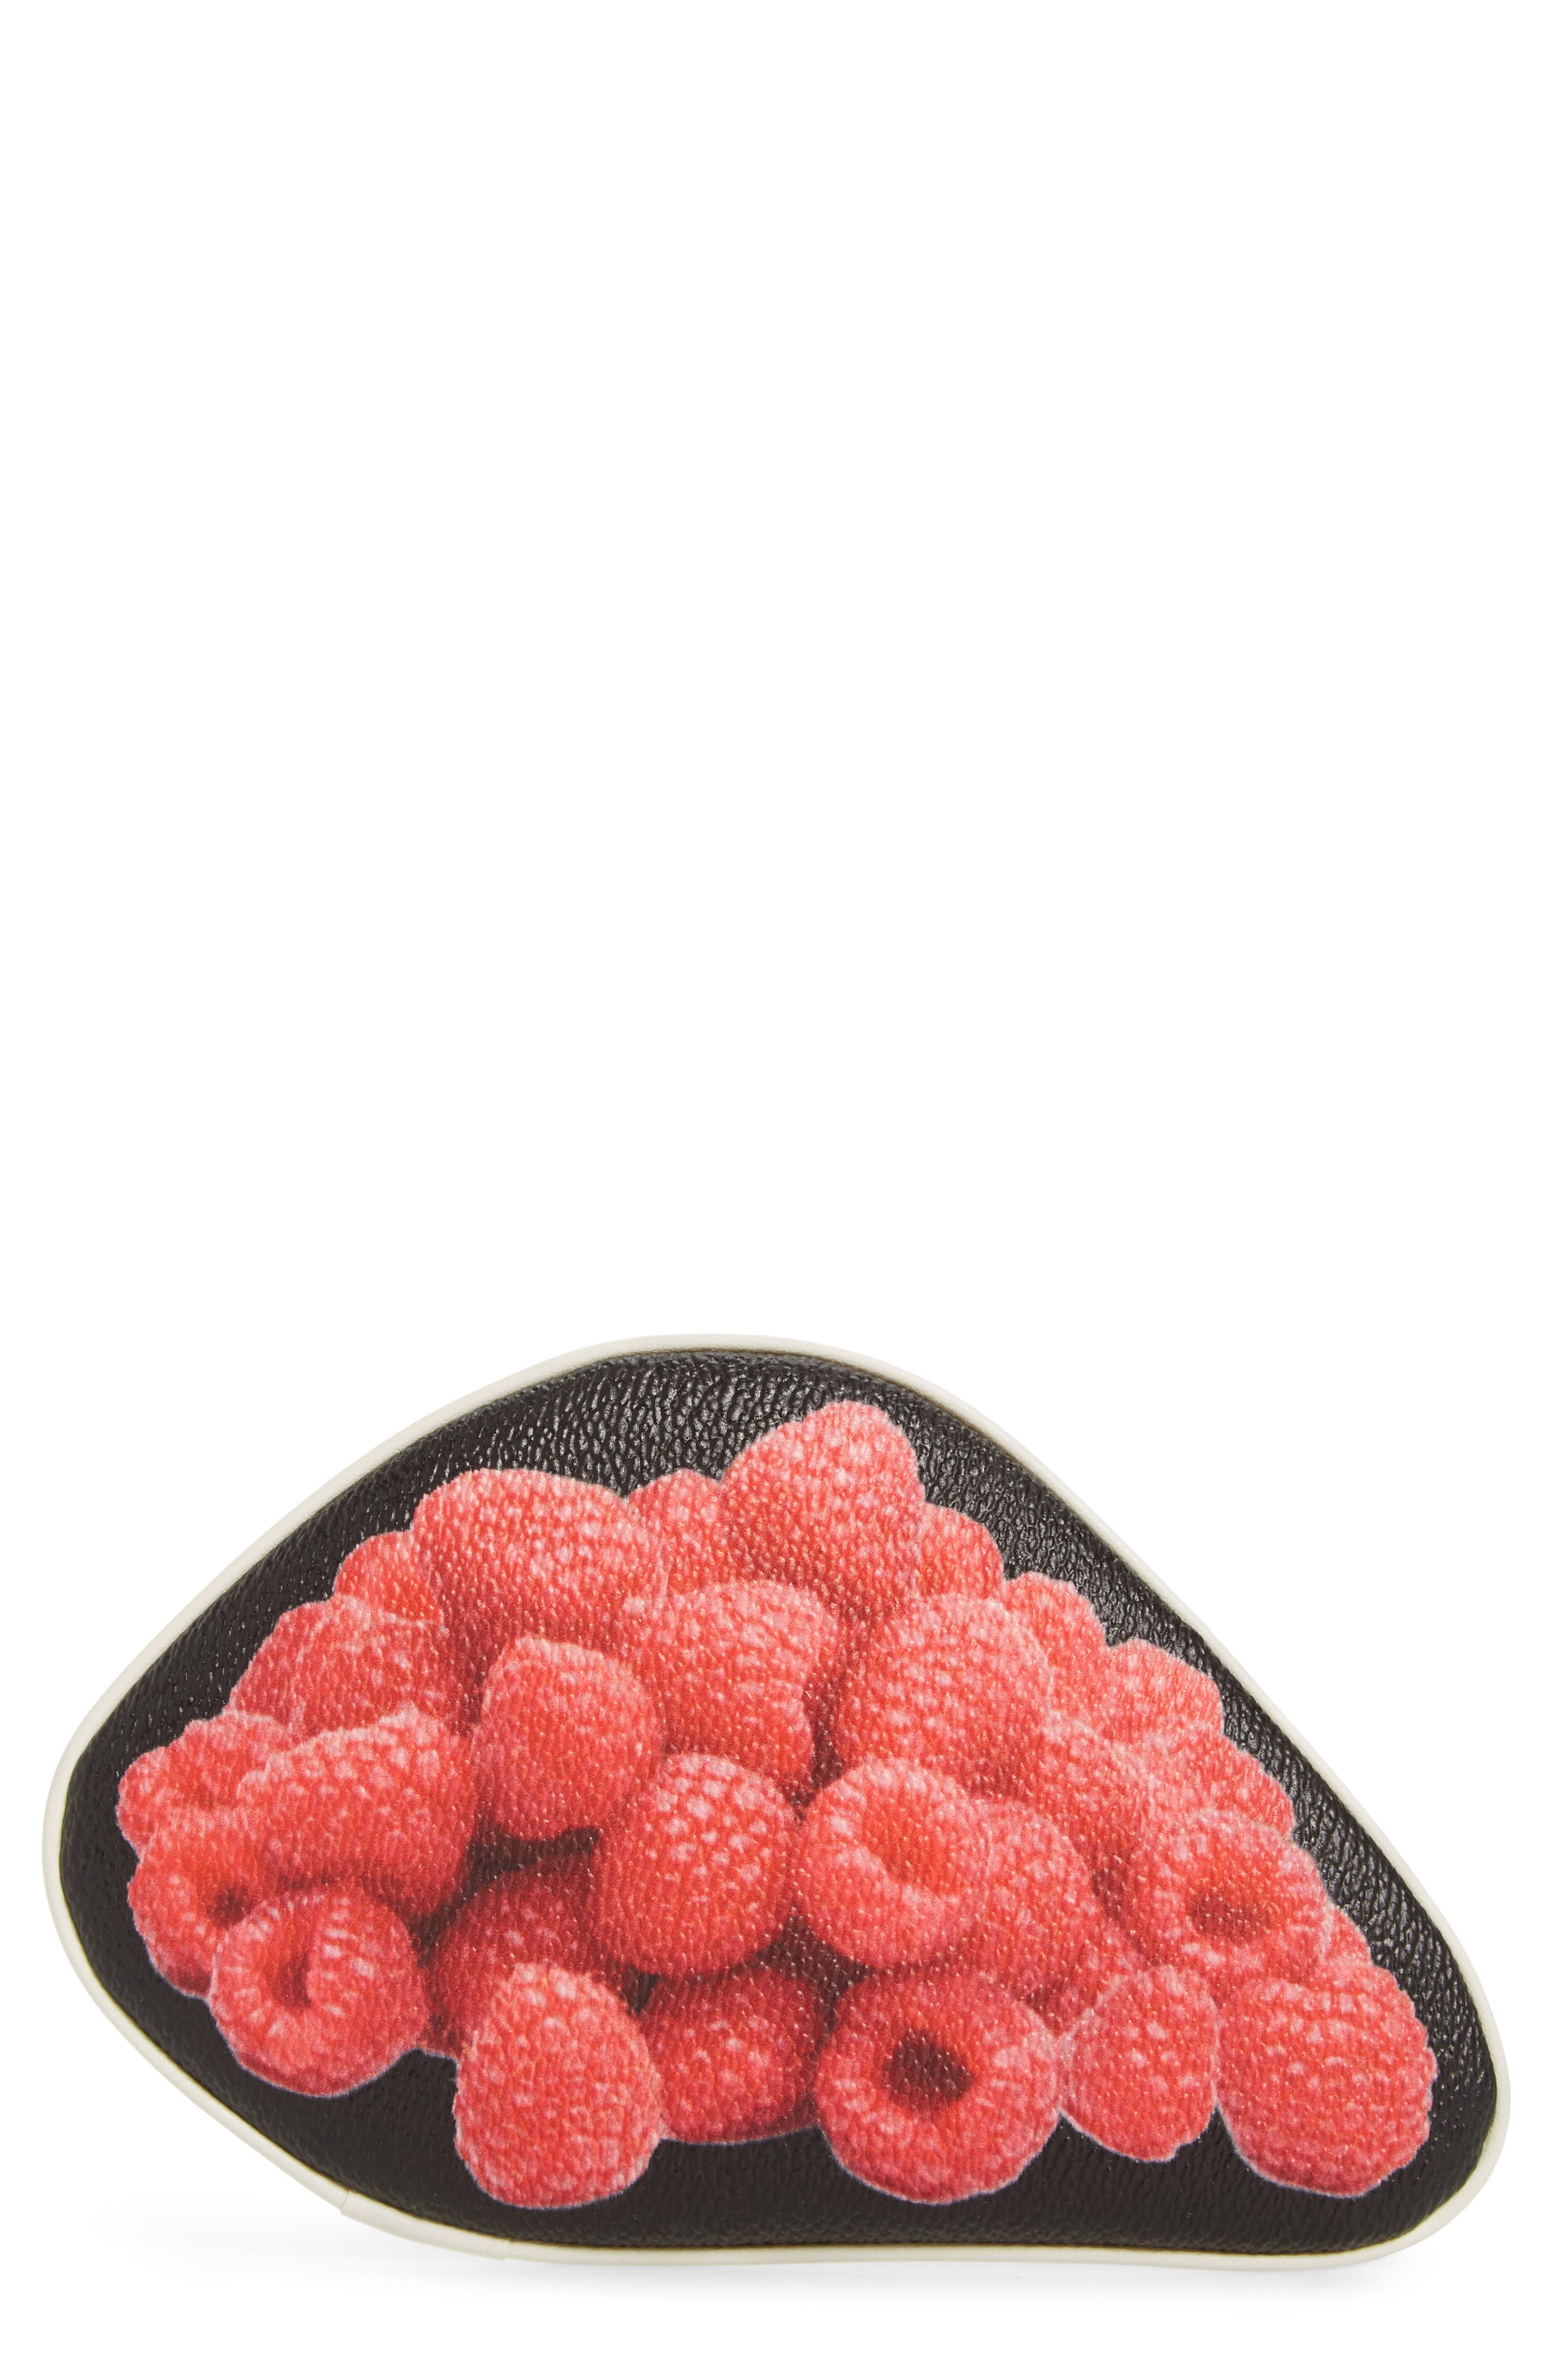 Main Image - Undercover Raspberries Coin Purse